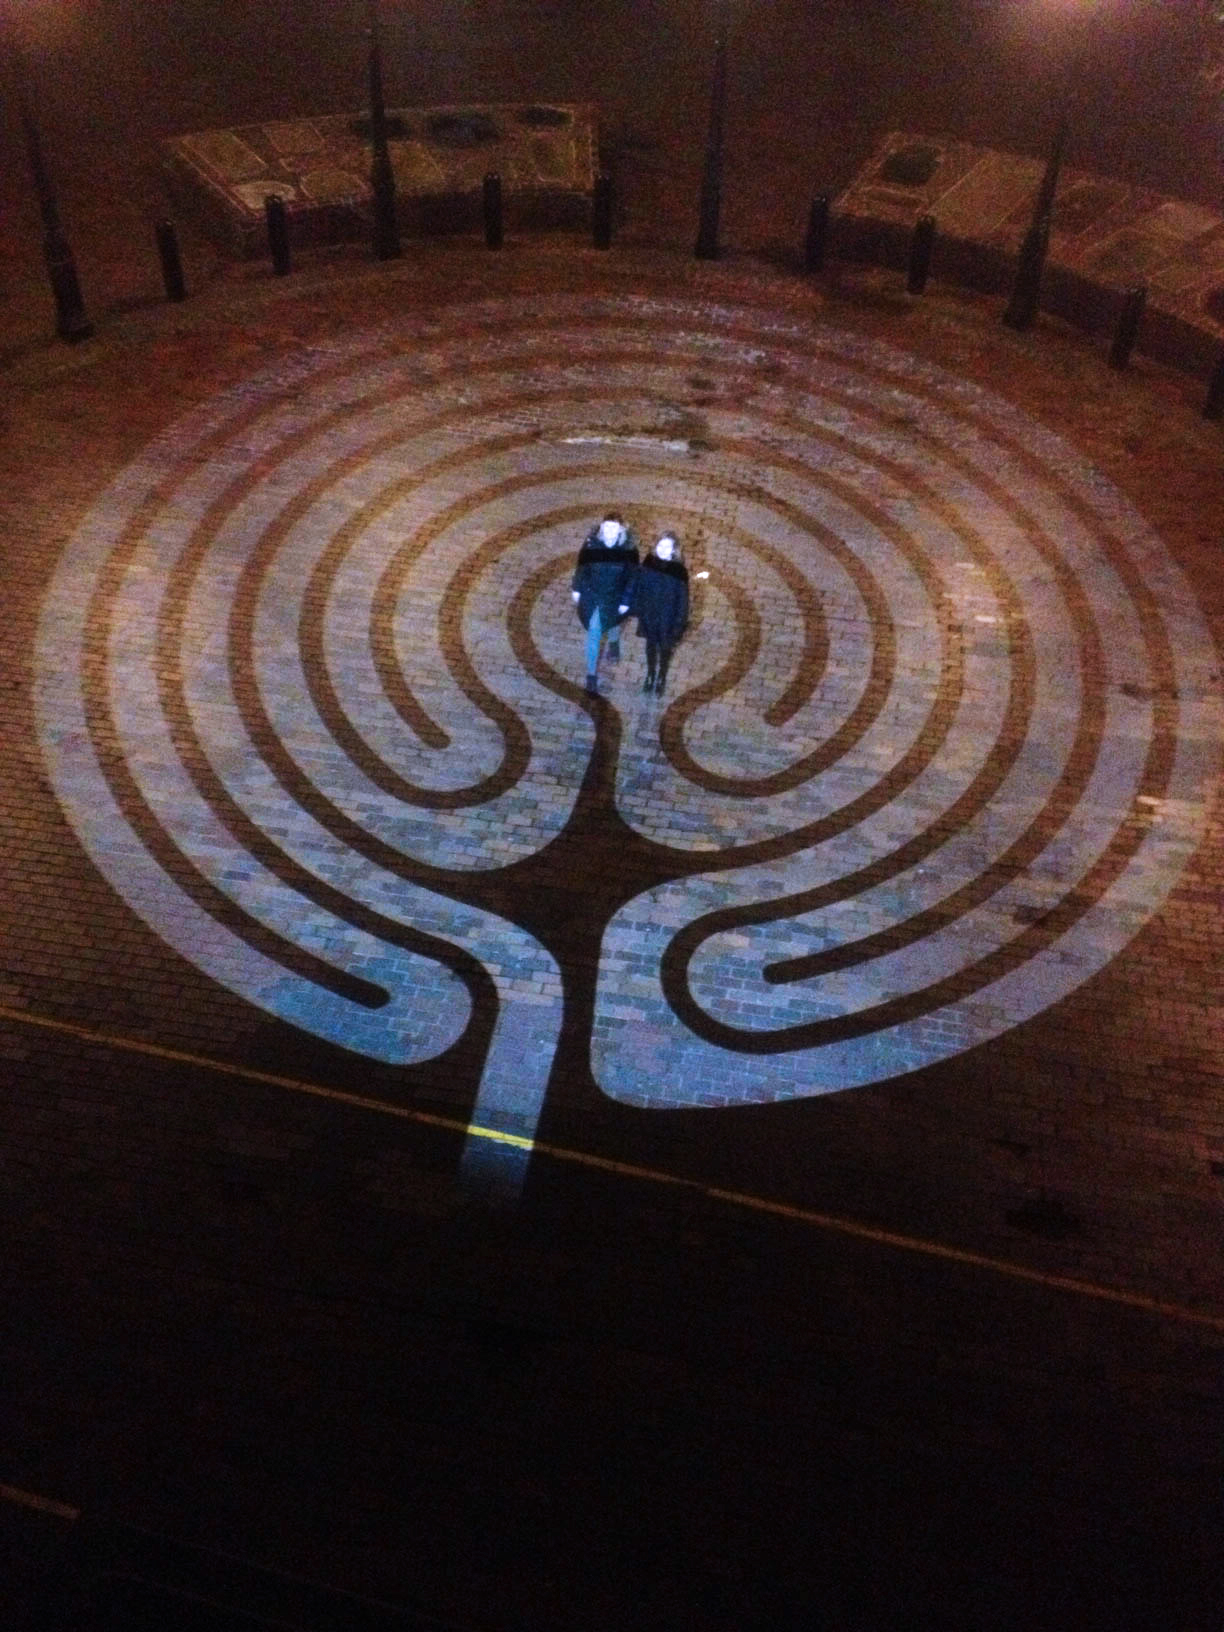 GoboPro LED projector used to make a labyrinth at night on the pavement.